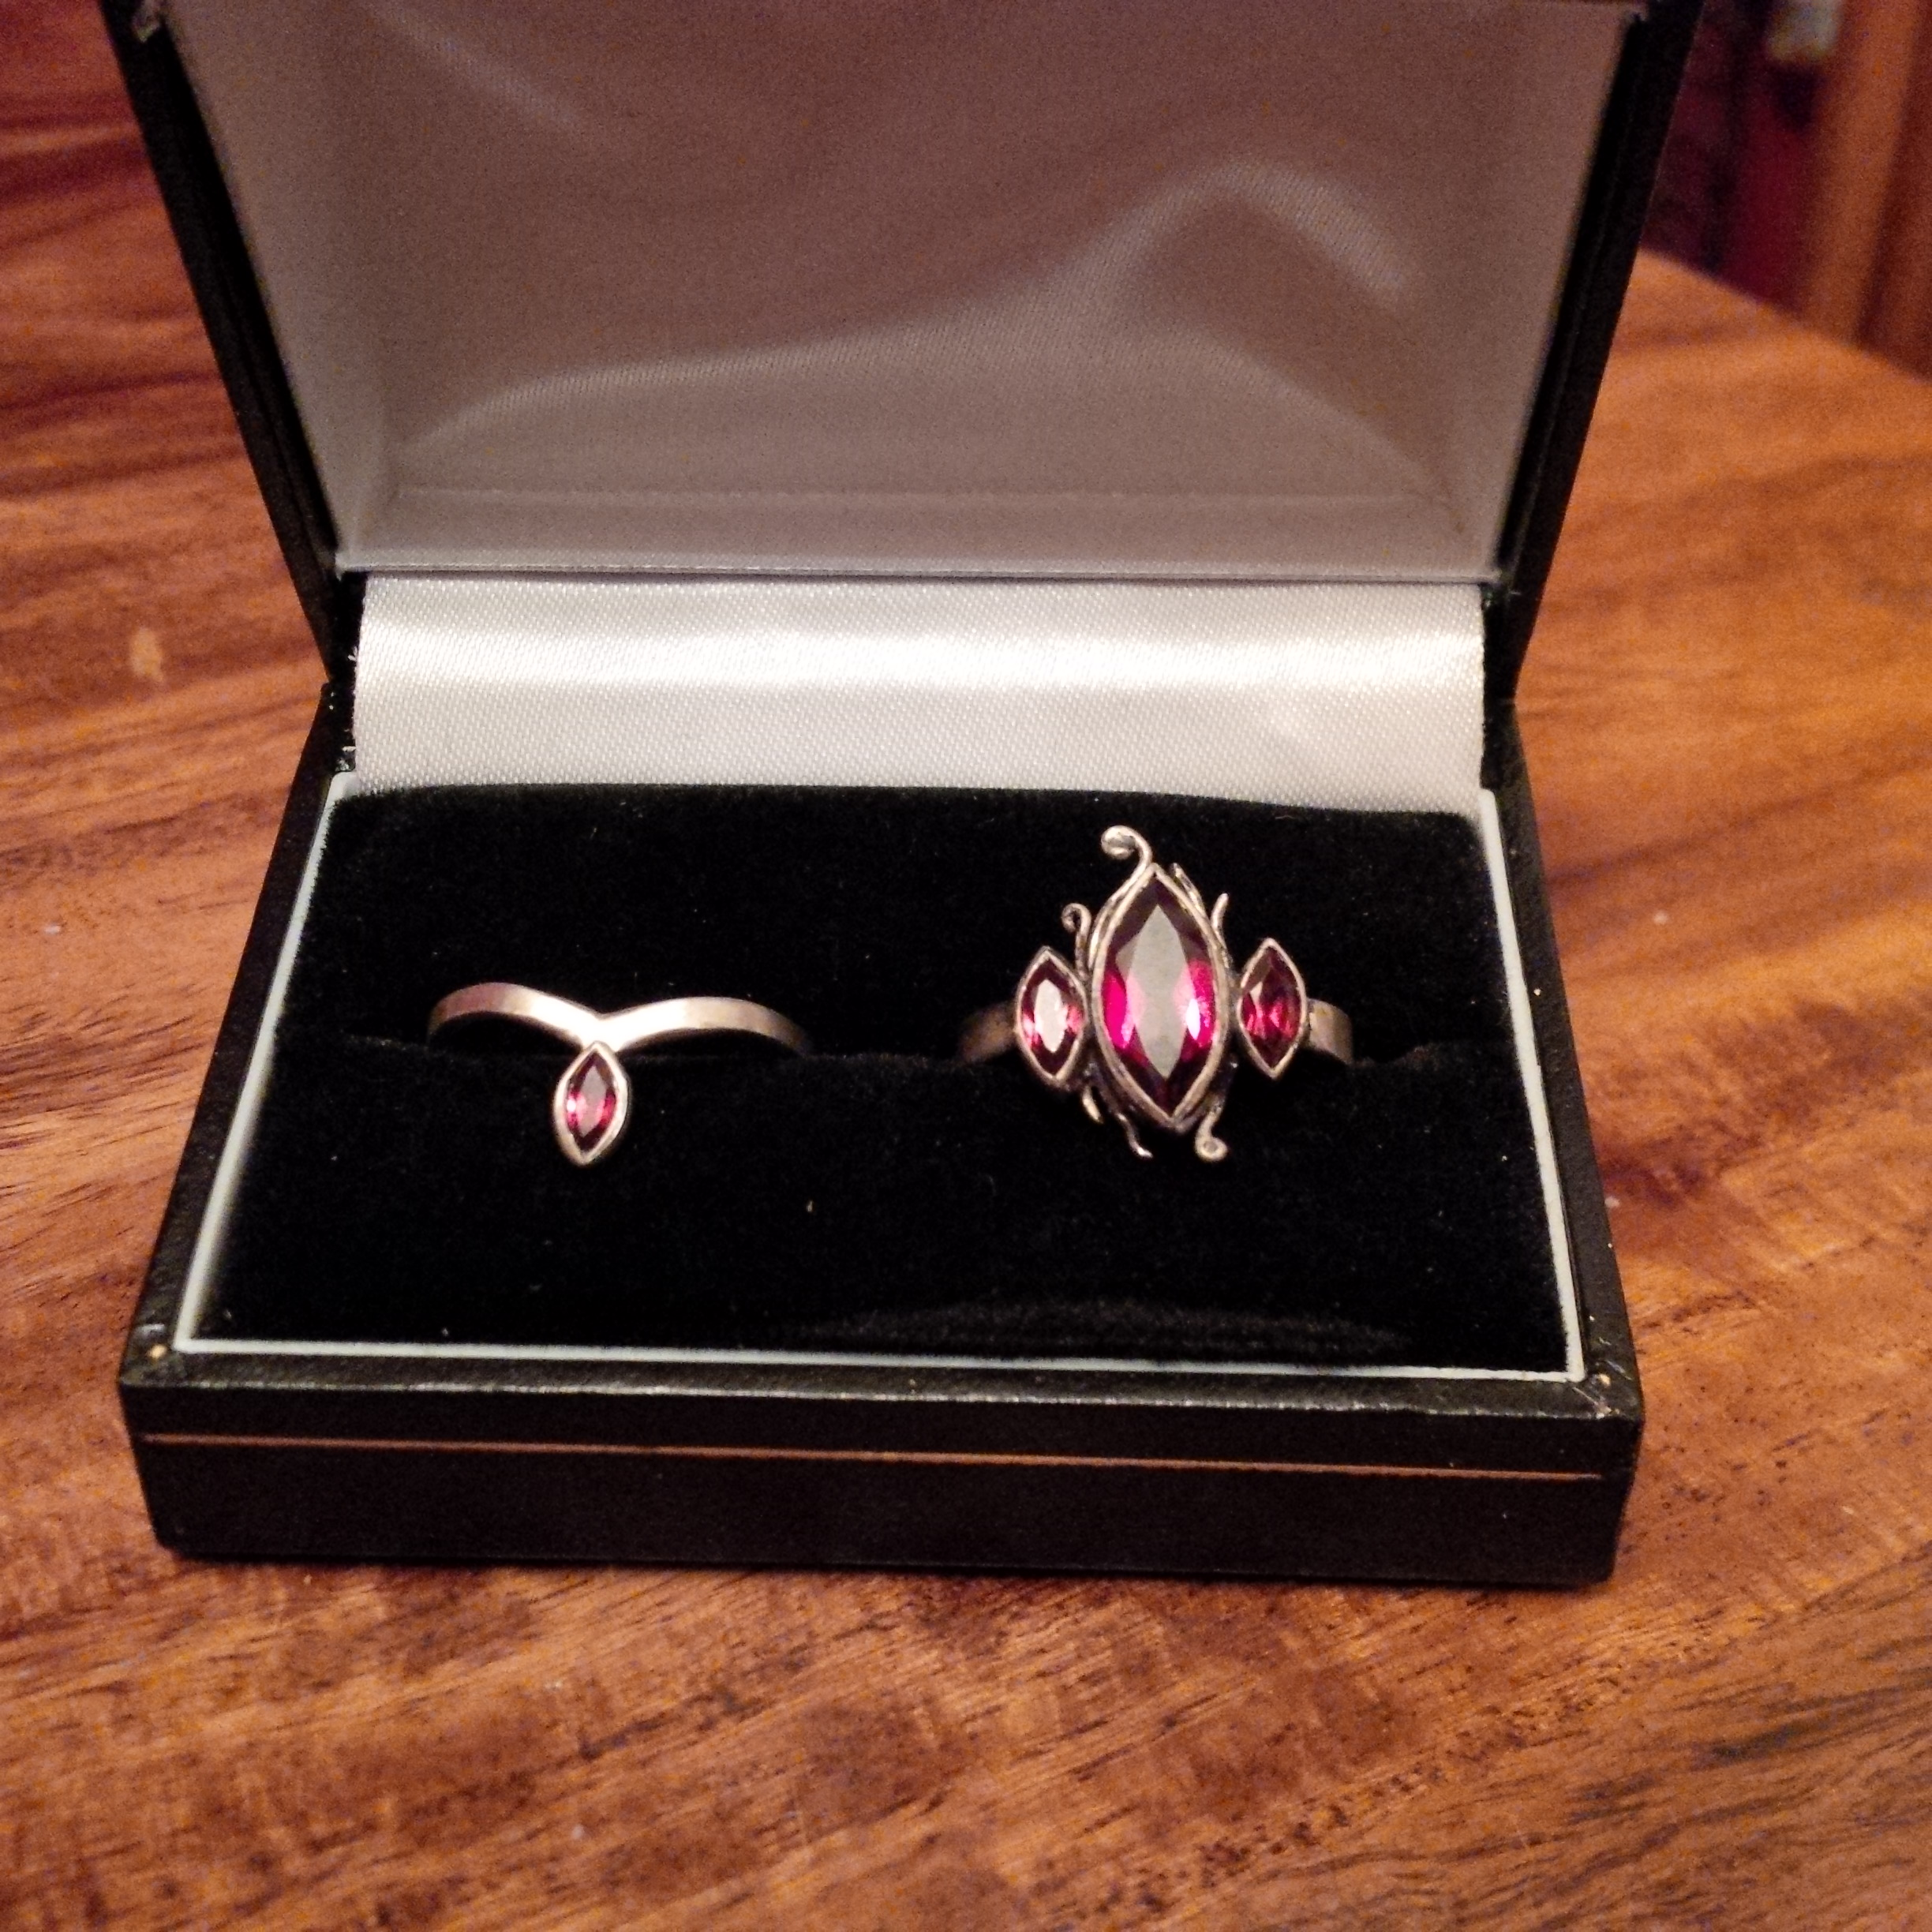 Silver rings with marquise cut garnets - NOT FOR SALE